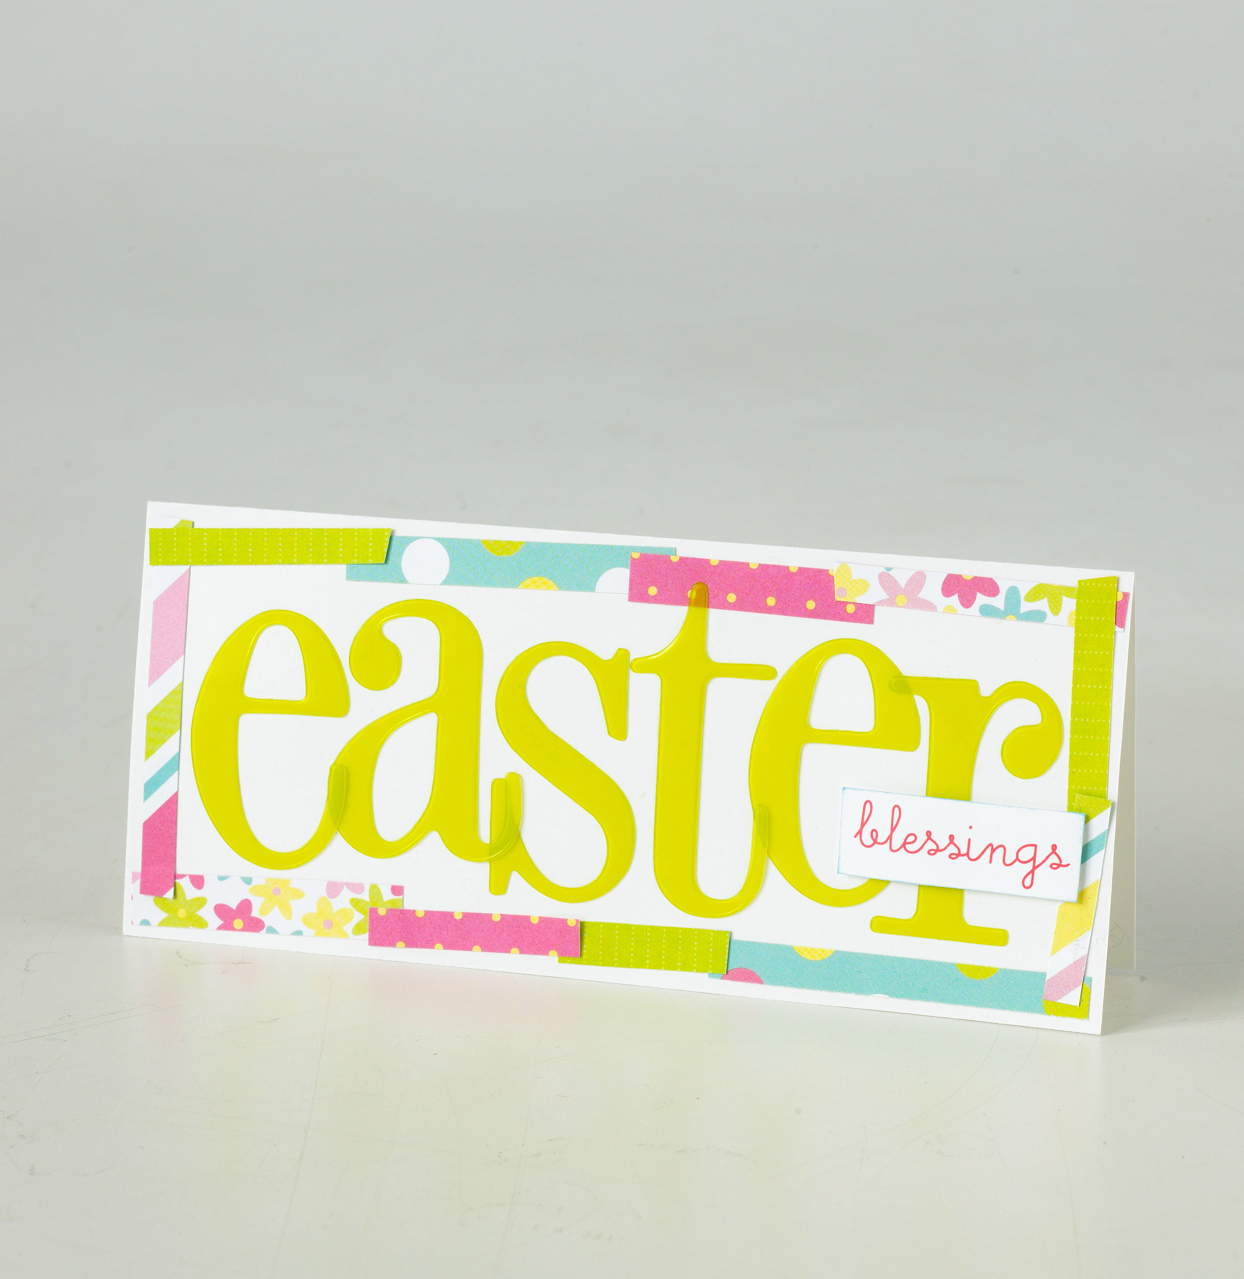 Easter Blessings Text Card